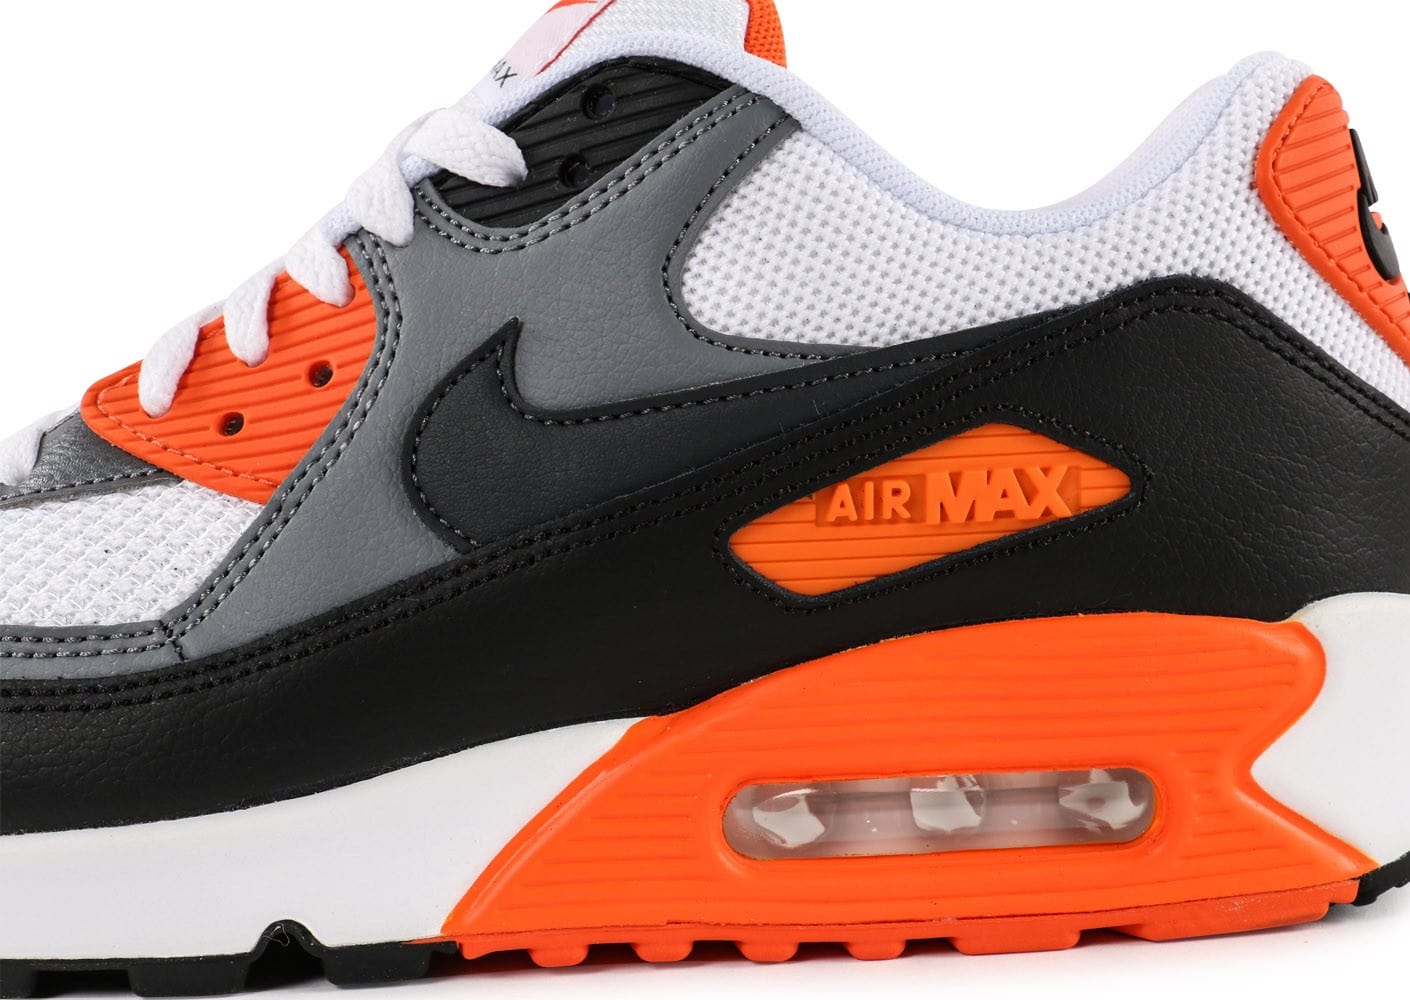 meilleures baskets aeb4a 0215a Nike Air Max 90 Essential blanc orange - Chaussures Baskets ...